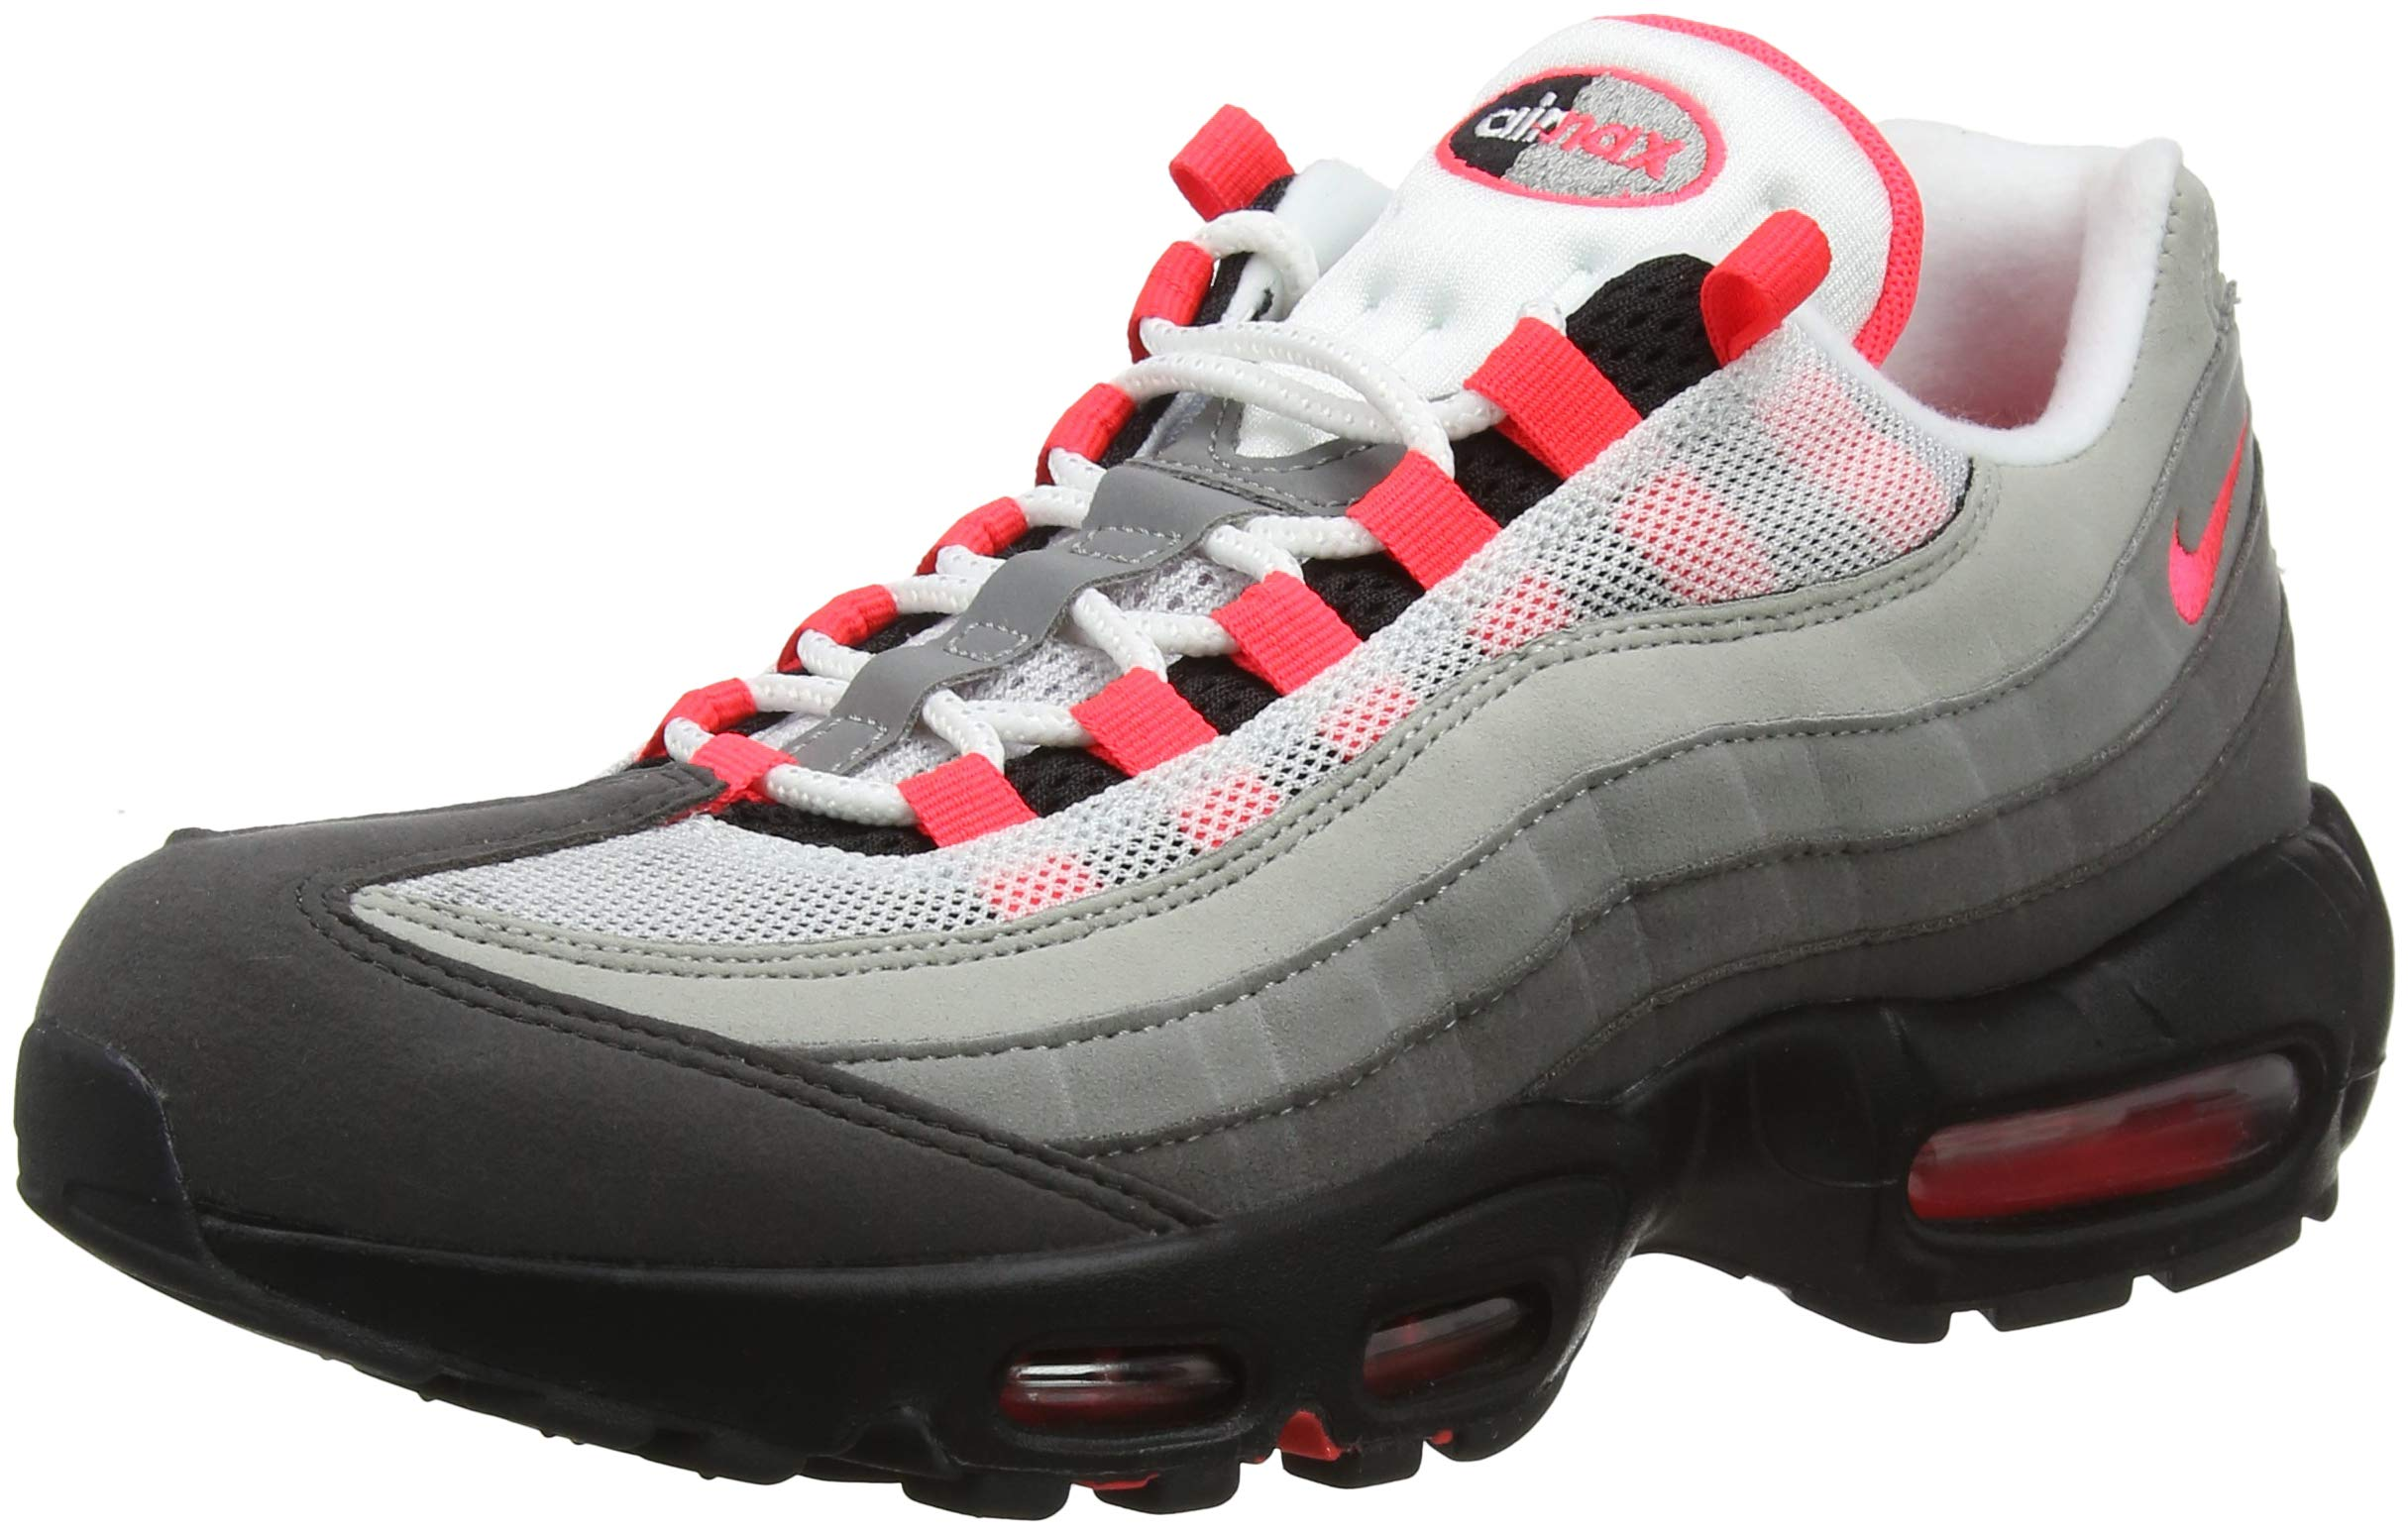 huge discount 56c1d cd6f5 Galleon - Nike Womens Air Max 95 OG Lifestyle Hiking, Trail Shoes Gray 5.5  Medium (B,M)